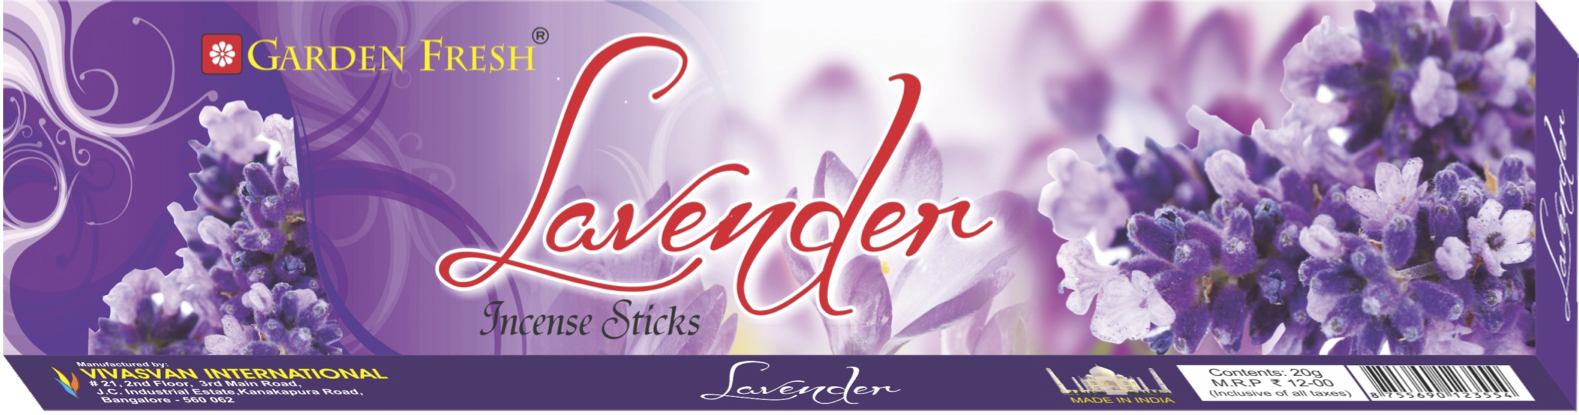 LAVENDER - Lavender has traditionally been used for many benefits. We present to you this soothing fragrance that calms your mind and uplifts your mood.Net weight: 20 grams